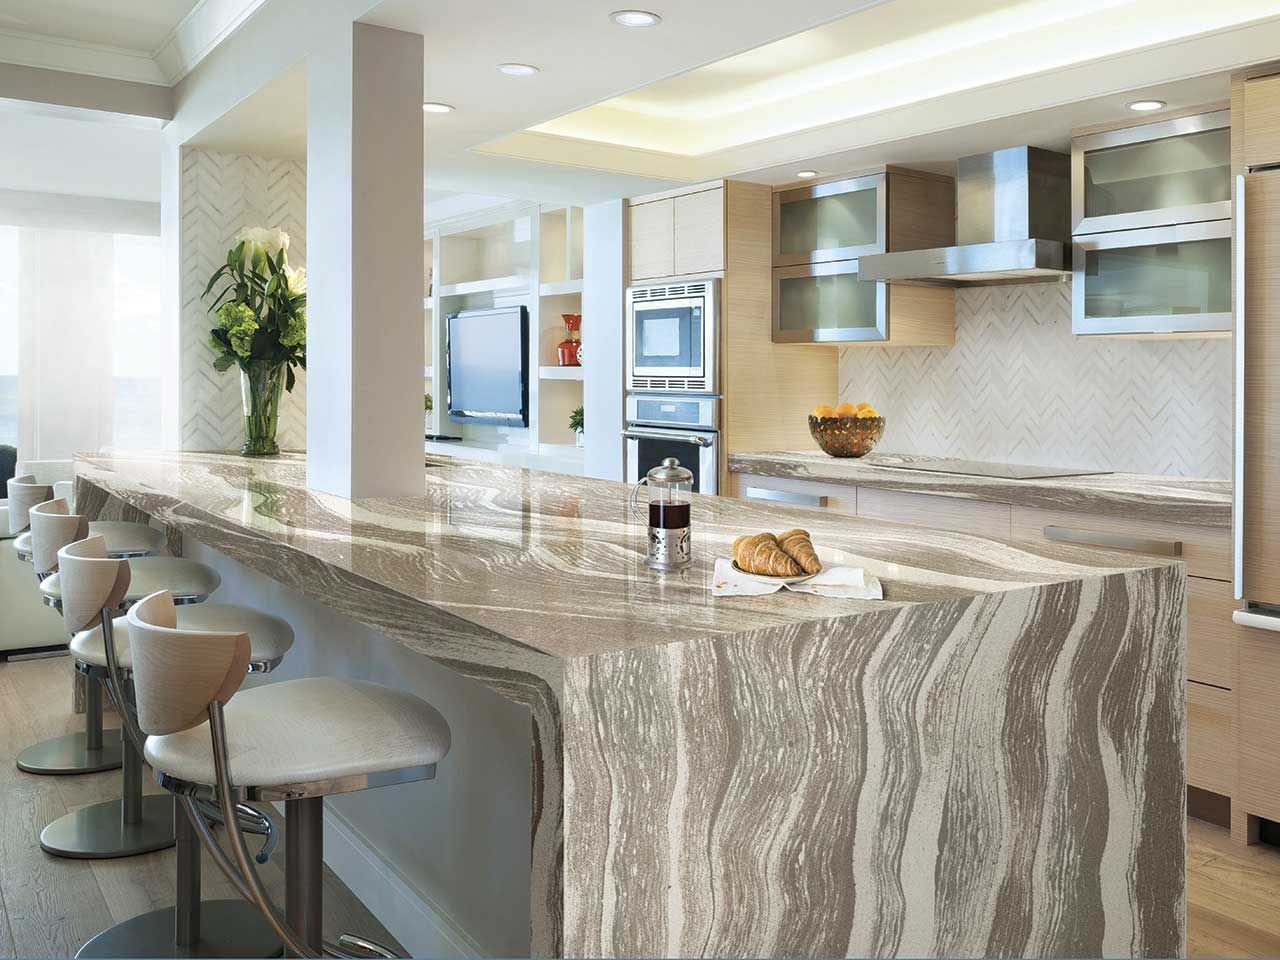 Astonishing Pretty With White Cabinets Waterfall Backsplash Resin Image For  How To Care Granite Countertops In